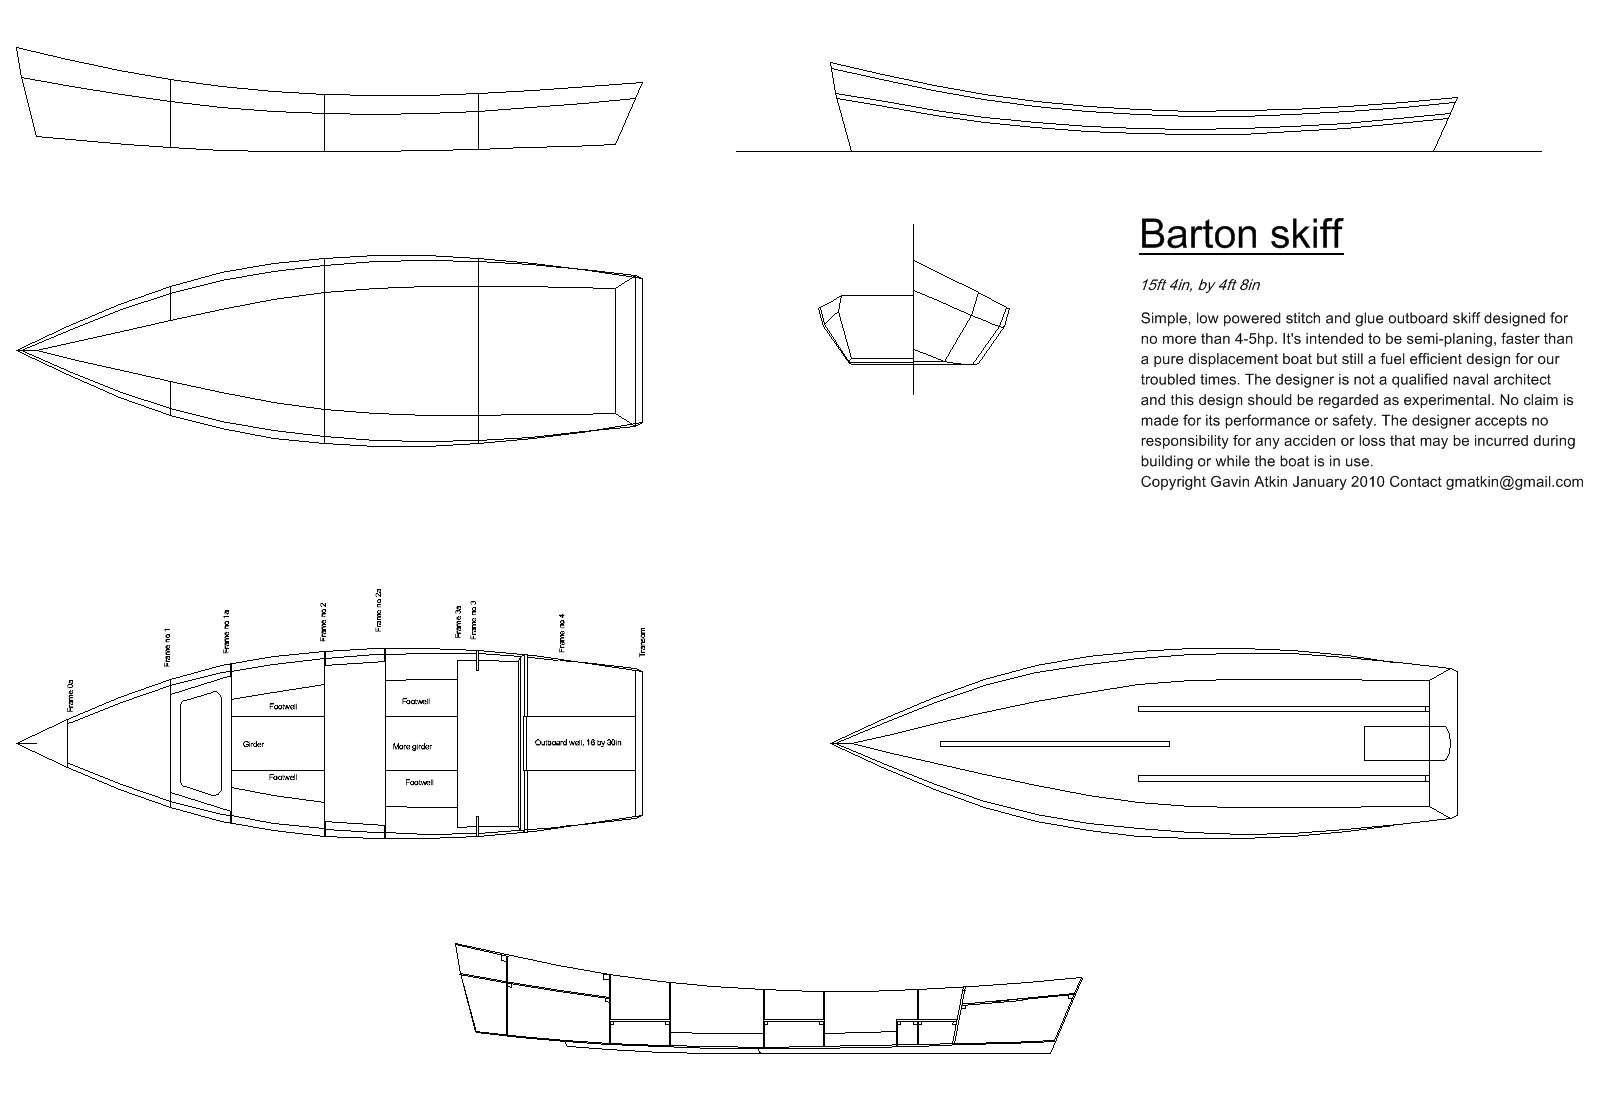 Barton skiff drawing1